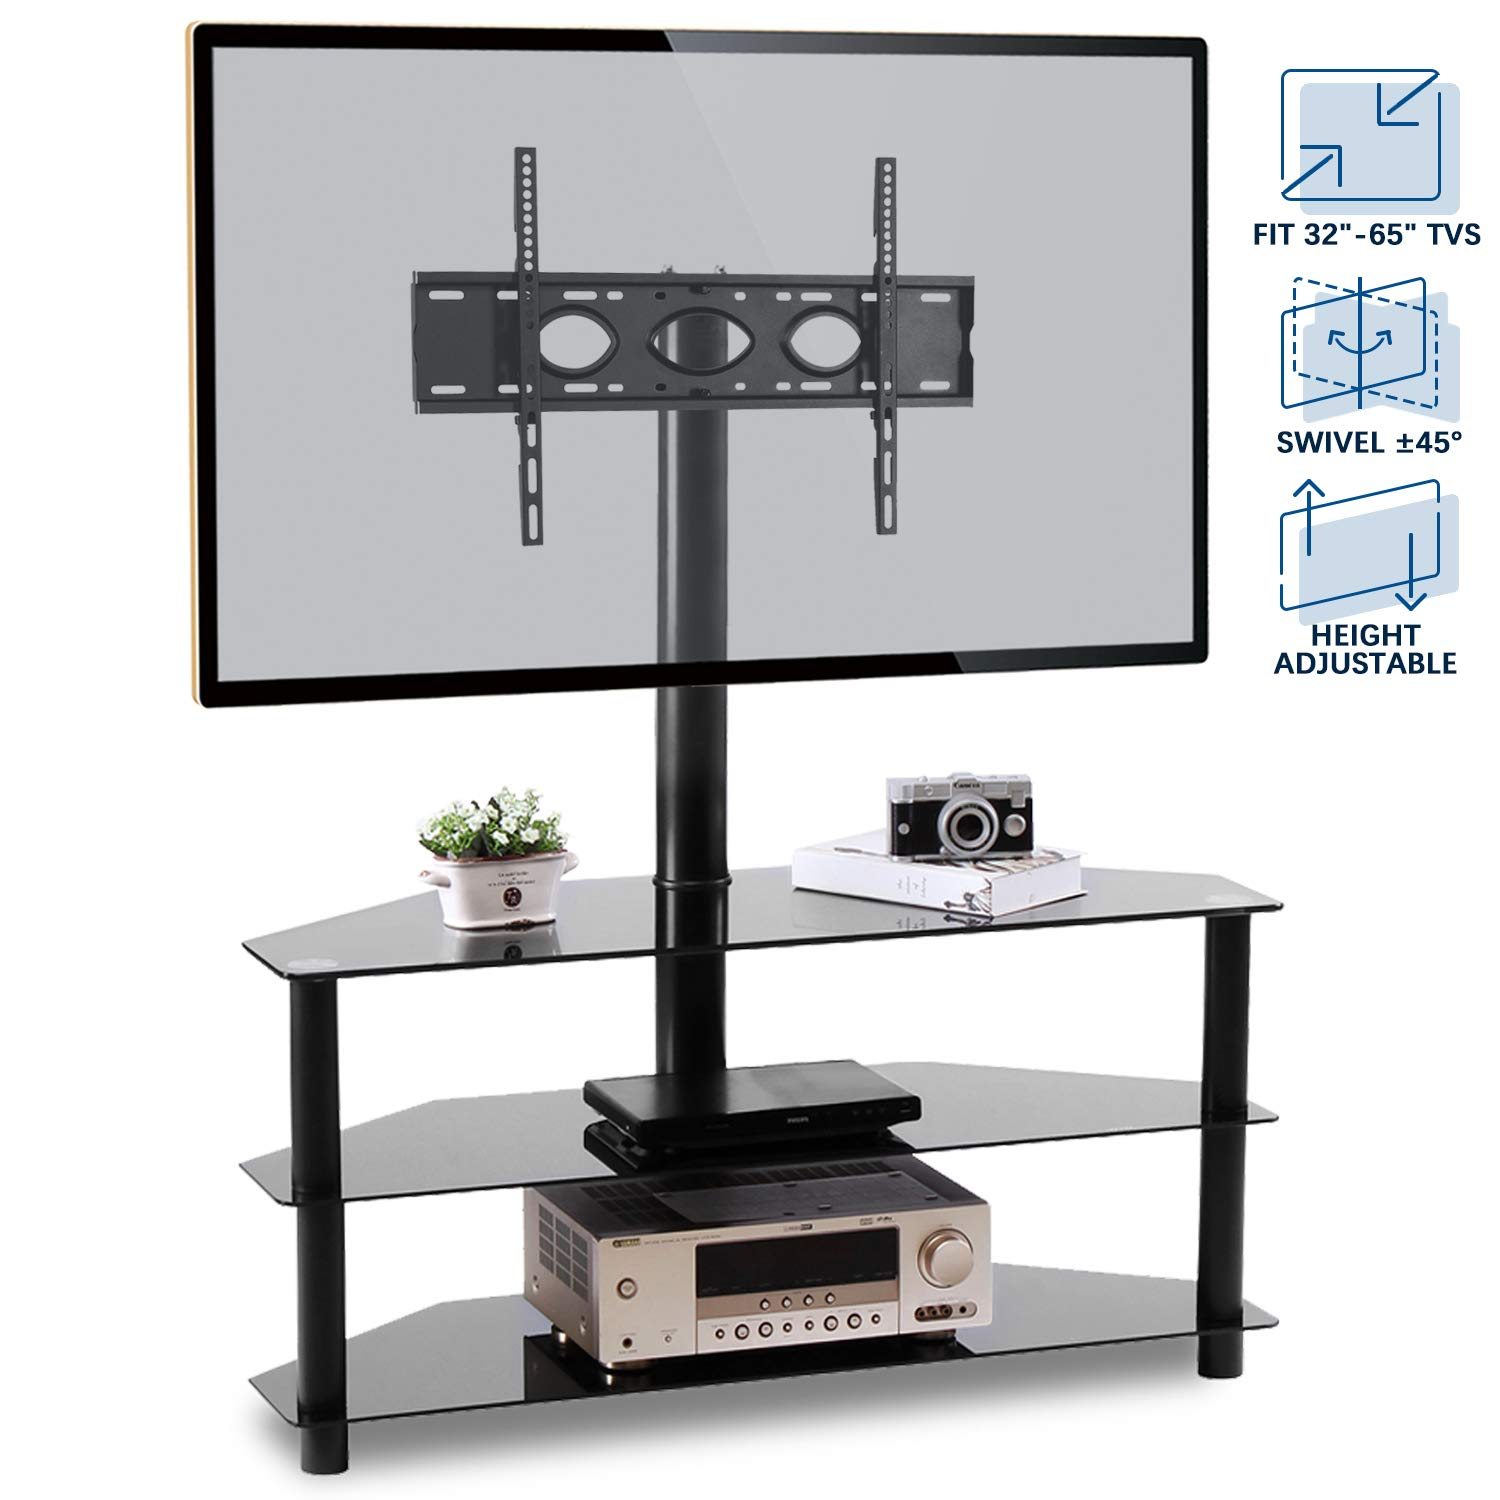 Rfiver Corner Floor TV Stand with Swivel Mount for Most 32''-65'' LED, LCD, OLED and Plasma Flat or Curved Screen TVs, Height Adjustable 3-in-1 Entertainment Stand in Black, TW2002 by Rfiver